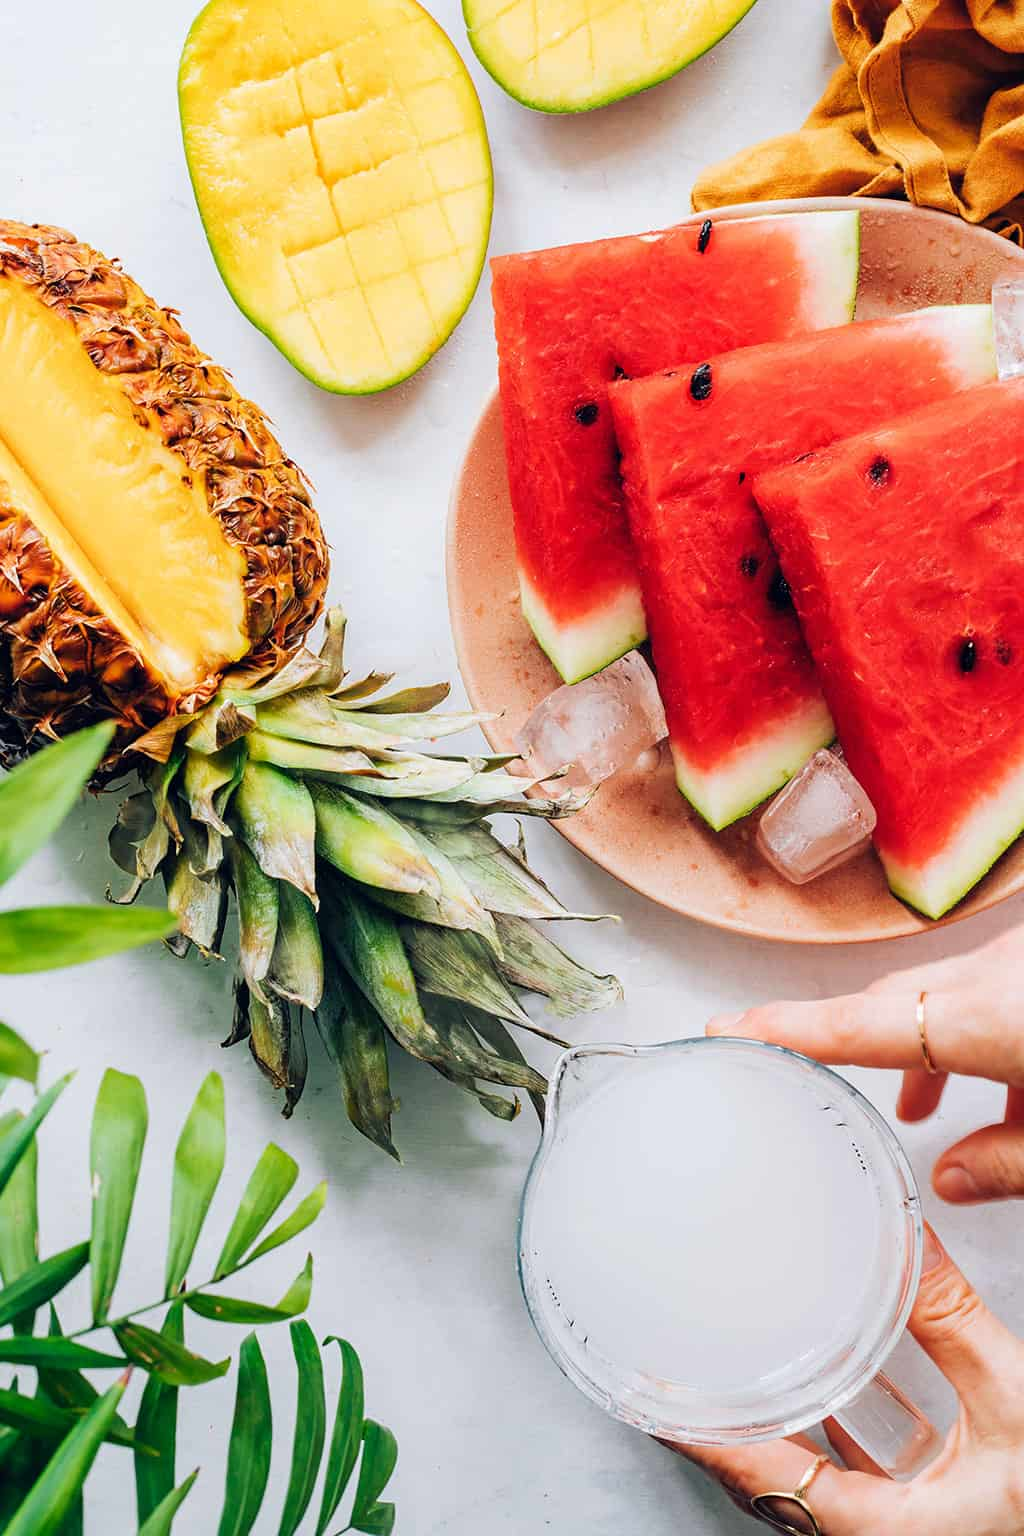 Coconut Water Smoothie Recipe with Watermelon